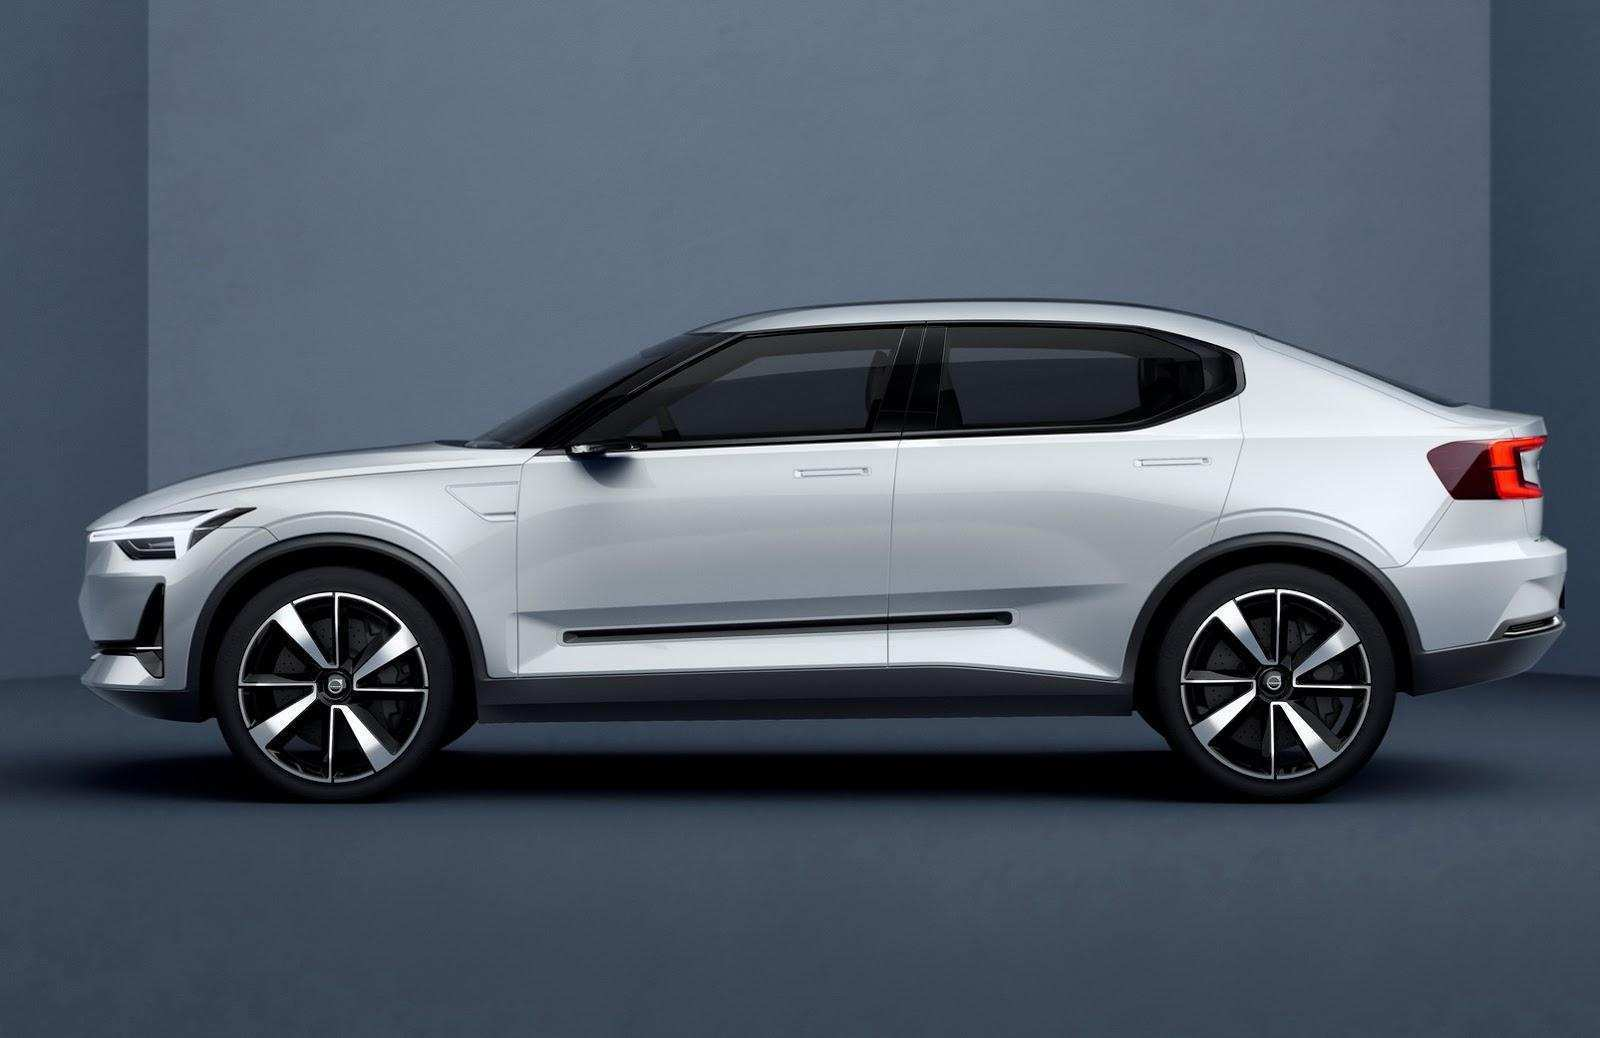 26 Concept of Volvo 2019 Modeller Redesign and Concept with Volvo 2019 Modeller